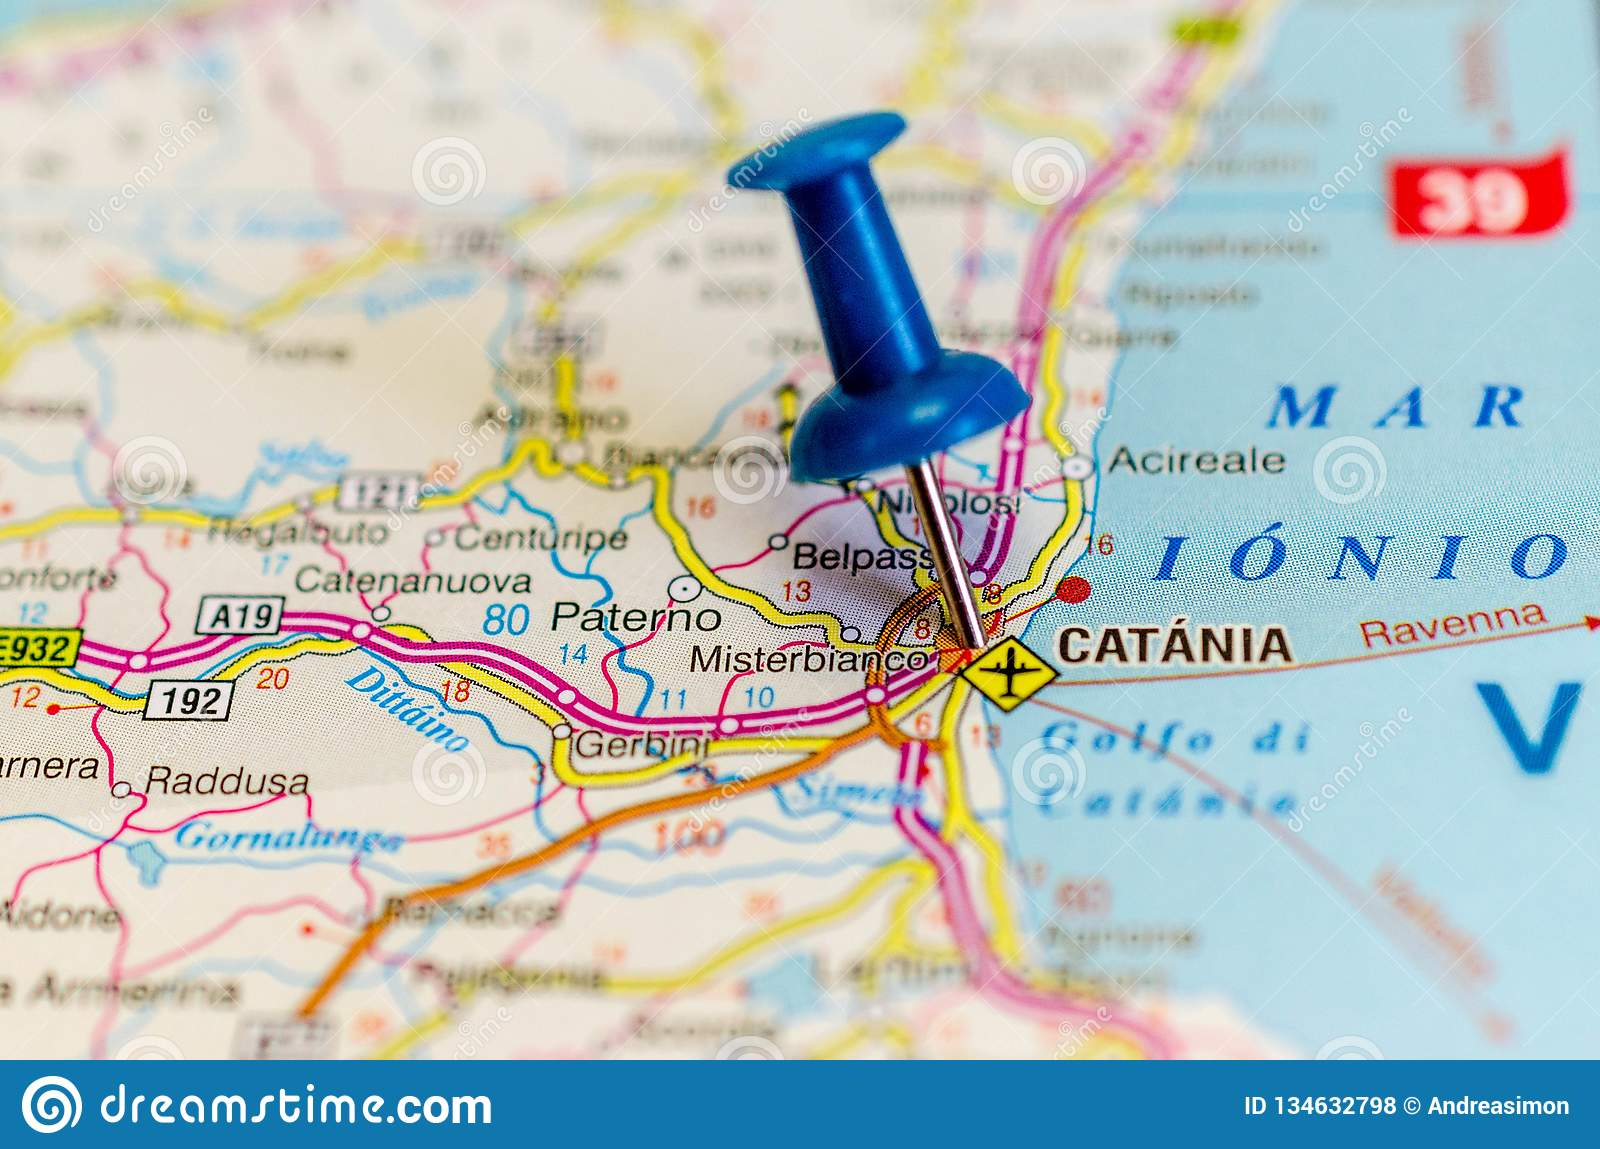 Catania on map stock photo. Image of coordinates, directions - 134632798